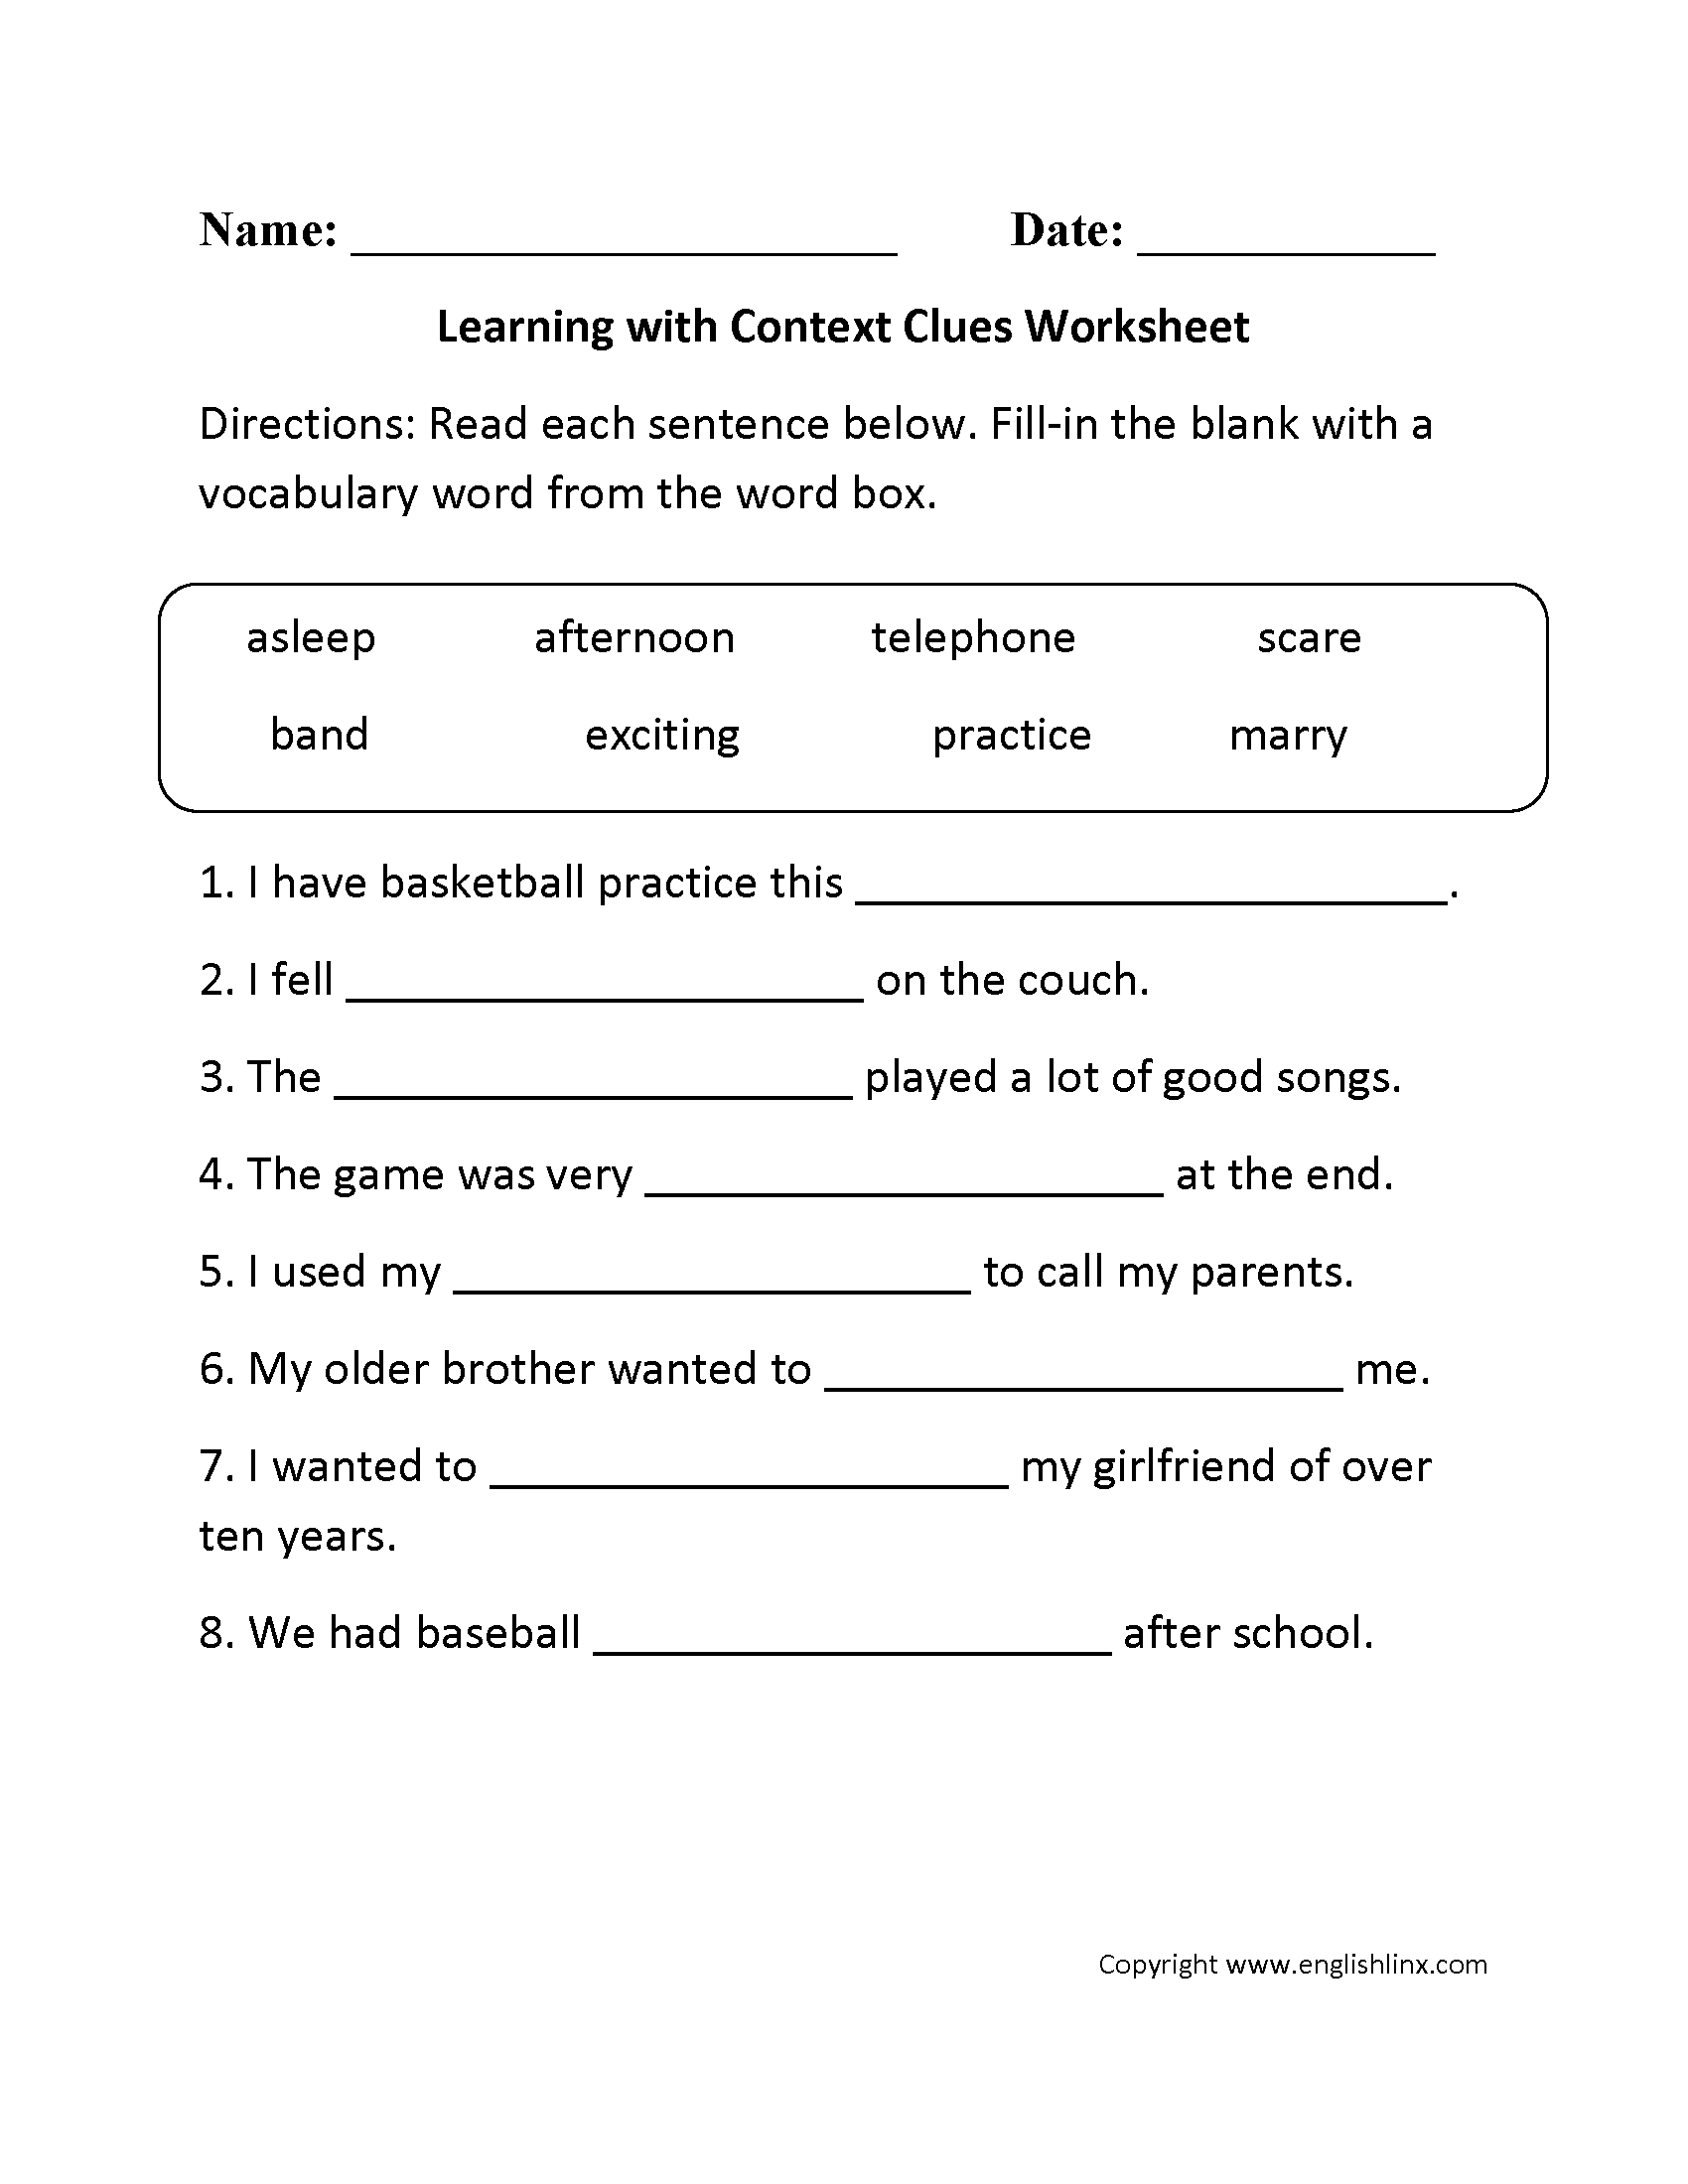 Worksheets Using Context Clues Worksheet reading worksheets context clues intermediate worksheets